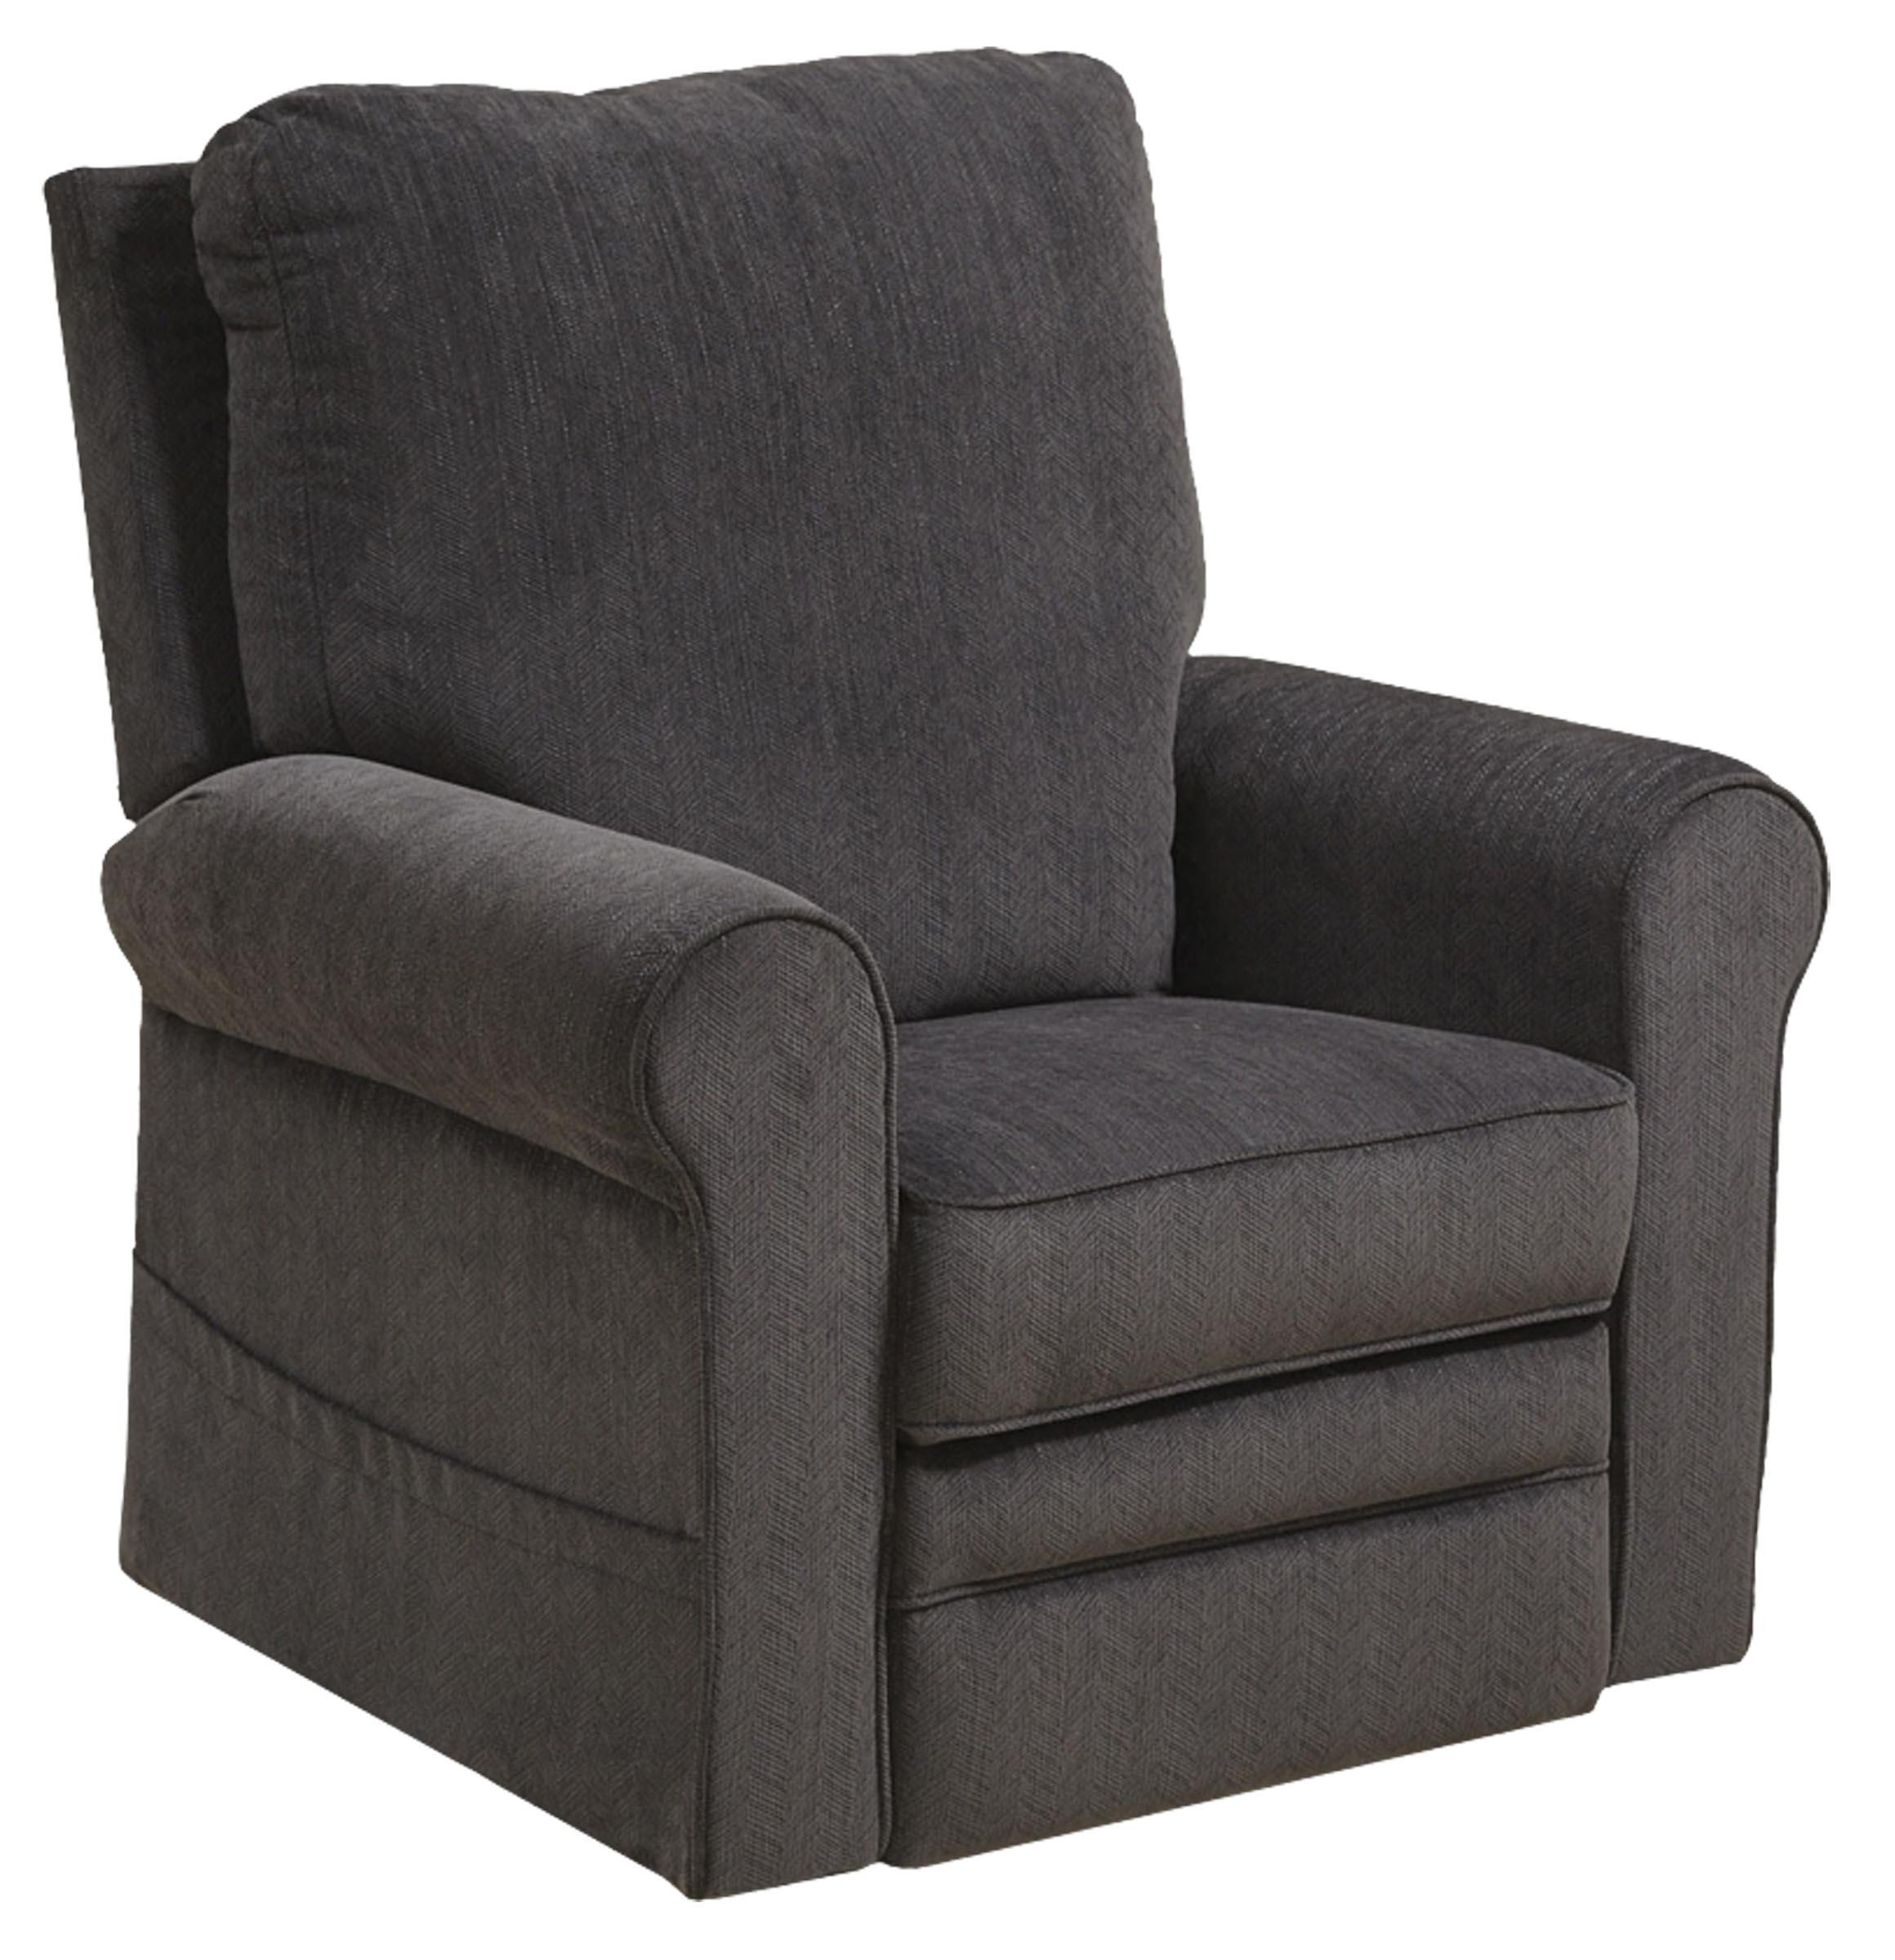 Catnapper Lift Chairs Catnapper Edwards Transitional Pow 39r Lift Recliner